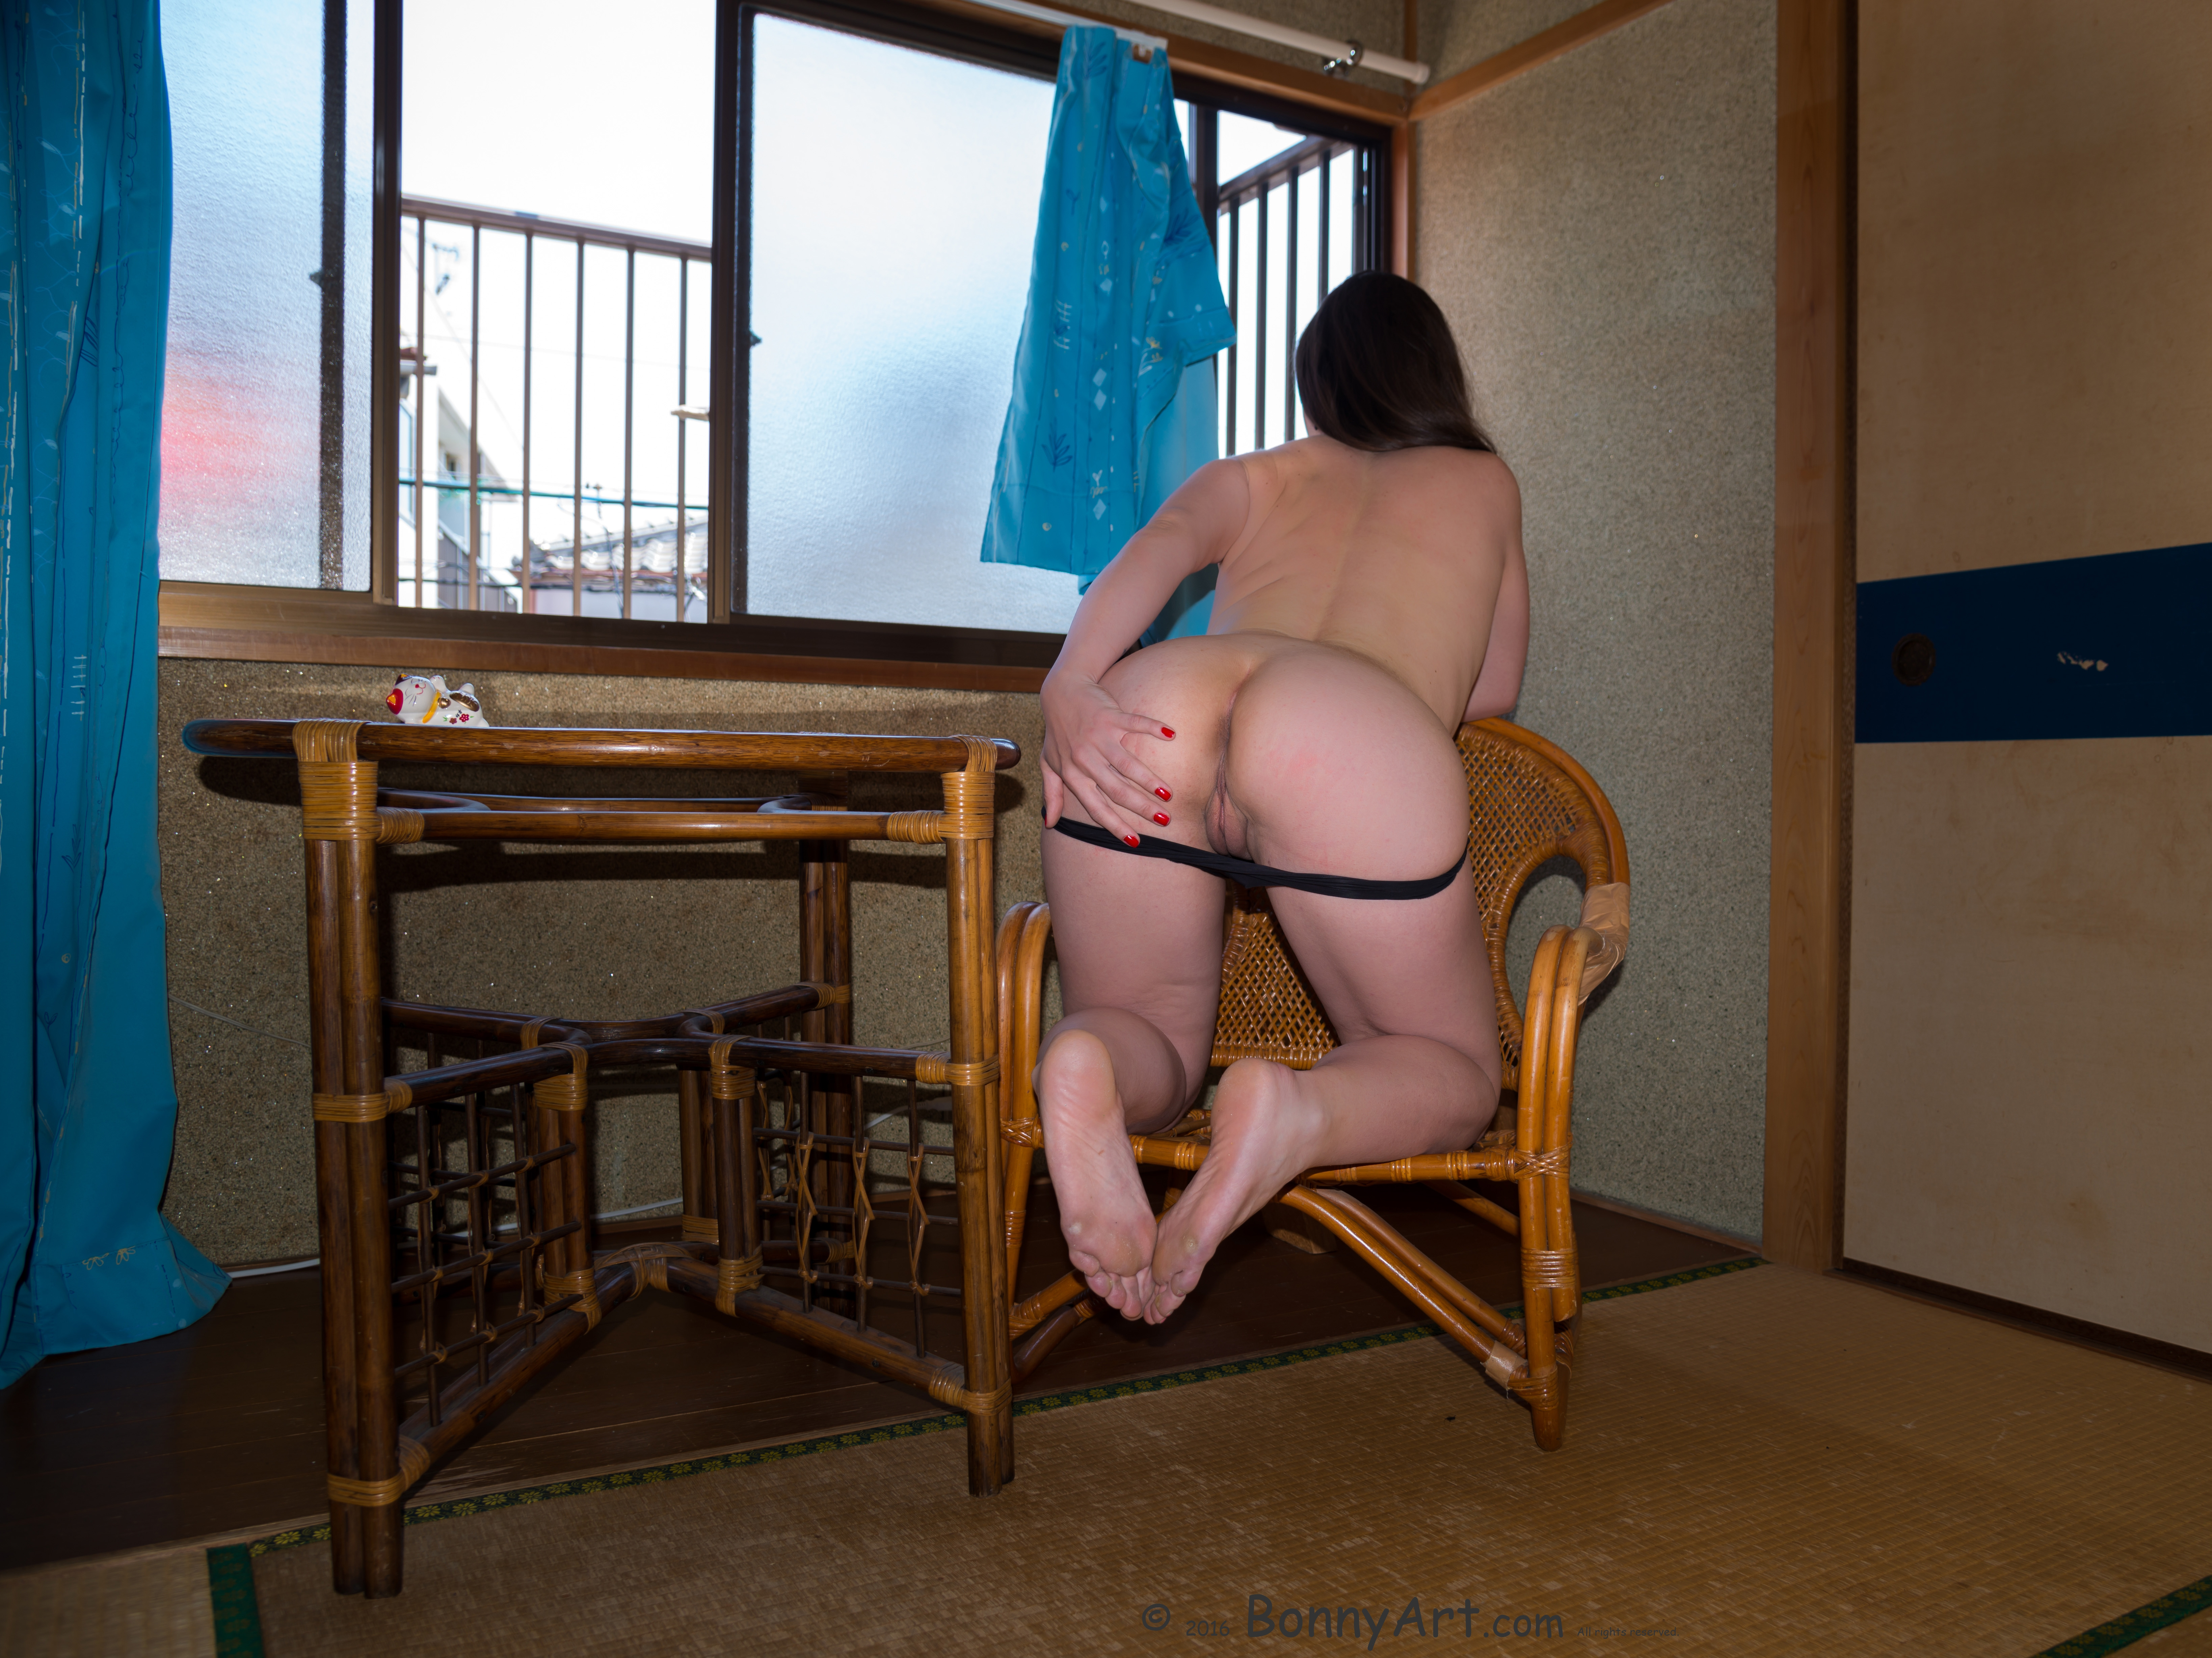 Spreading White Ass in Asian Room HD